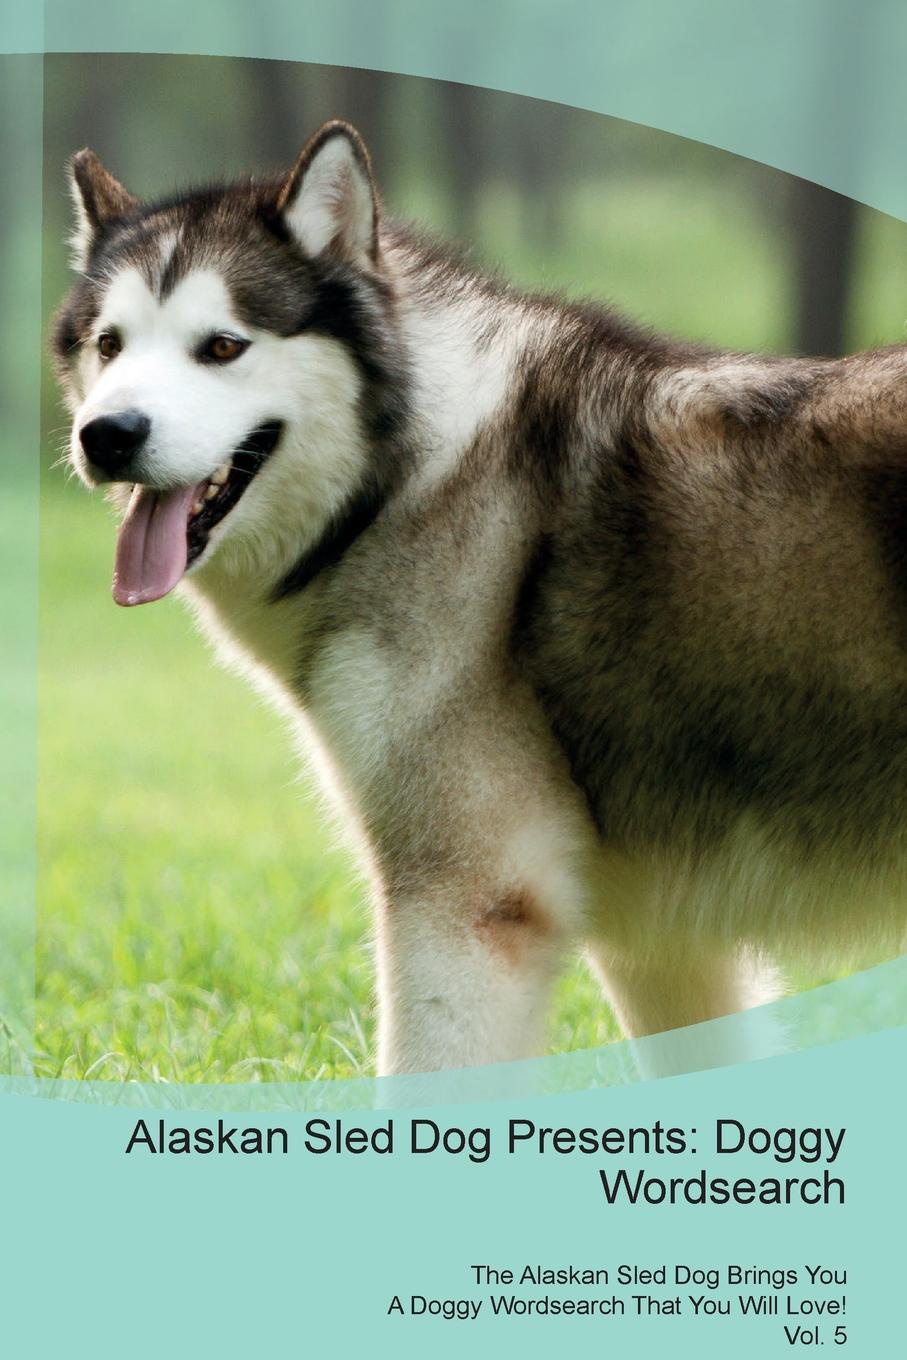 Doggy Puzzles Alaskan Sled Dog Presents. Wordsearch The Brings You A That Will Love! Vol. 5